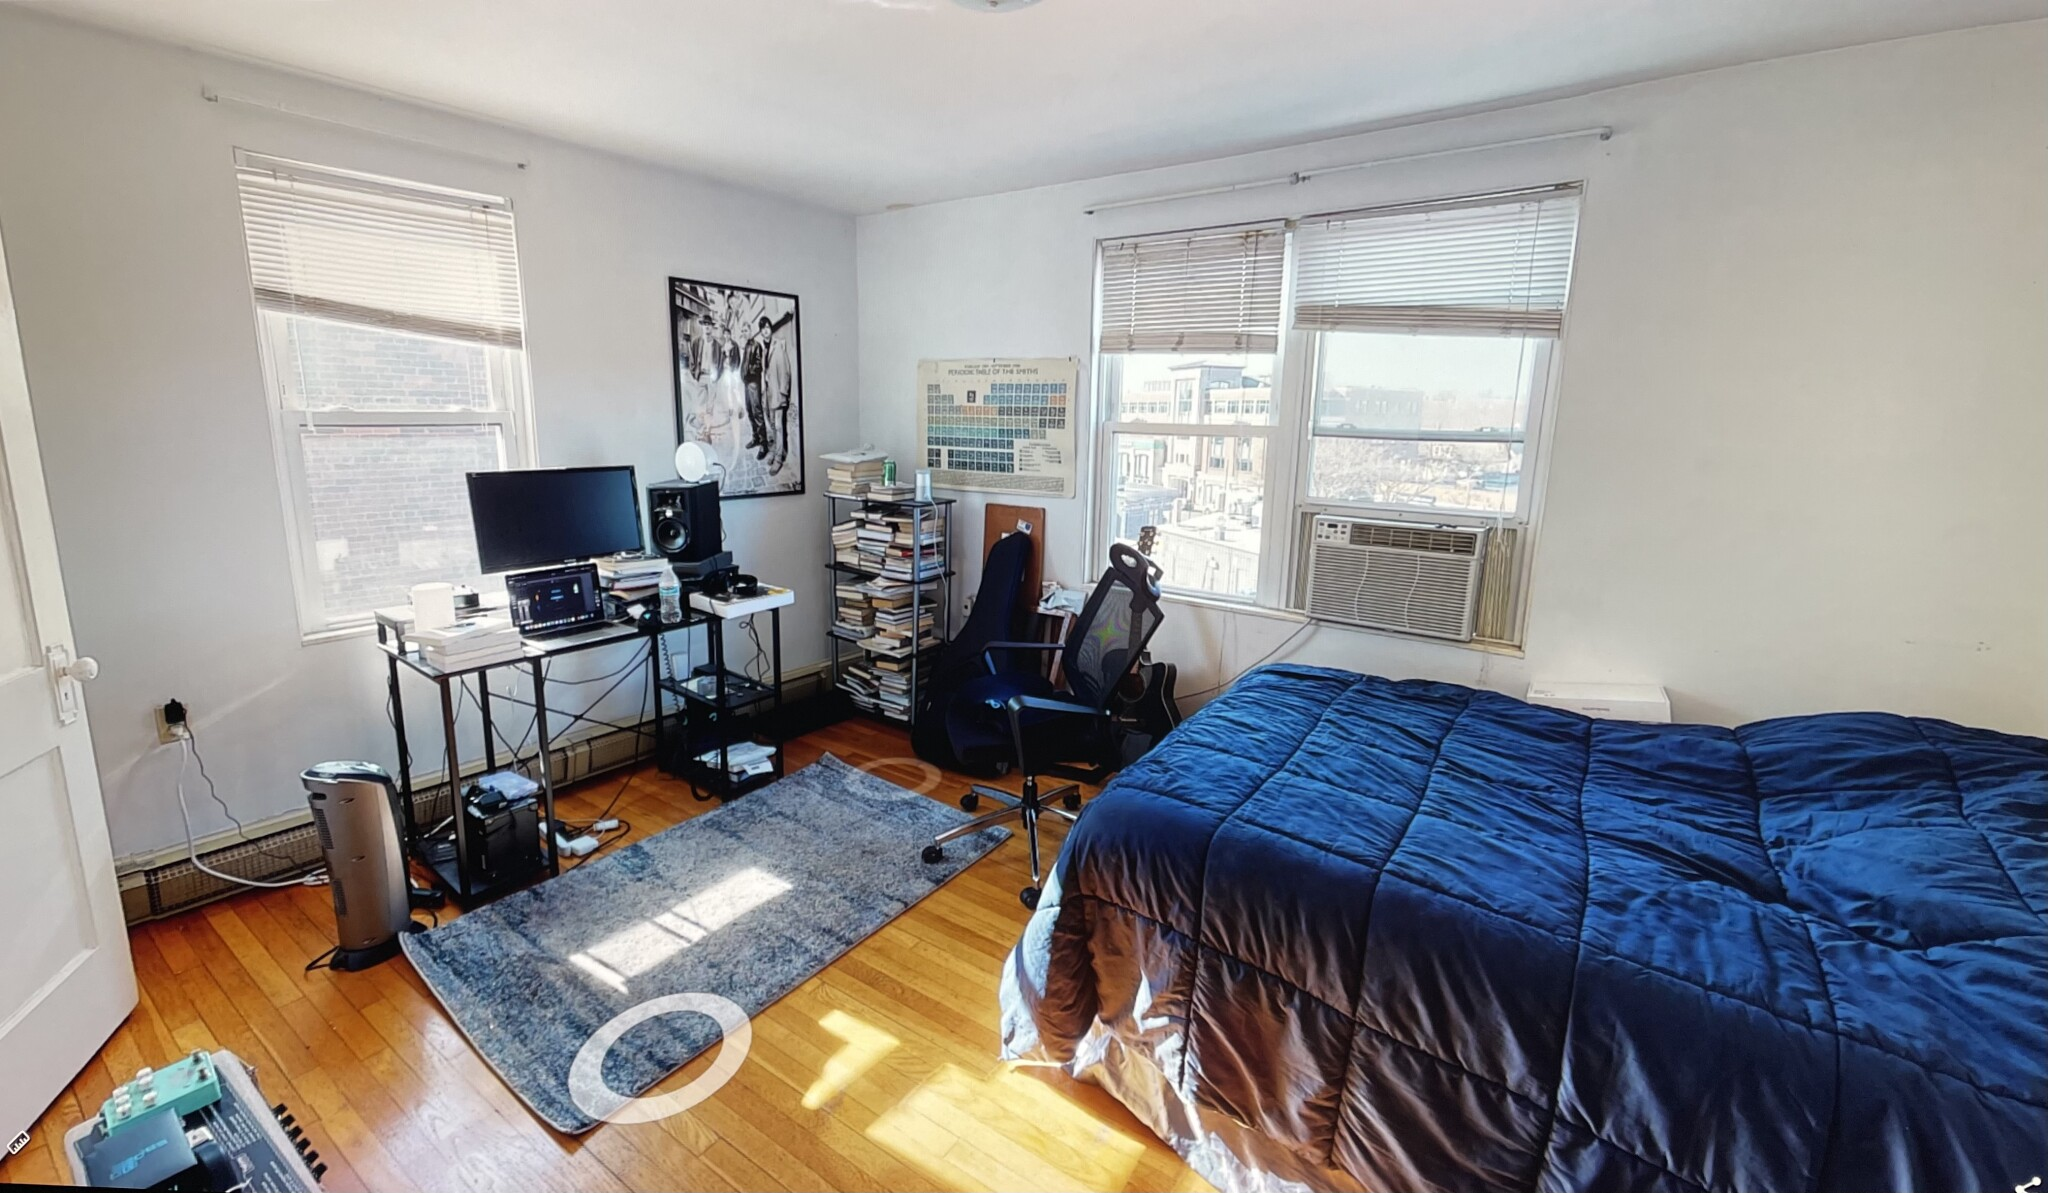 1 Bed, 1 Bath apartment in Somerville, Davis Square for $2,185